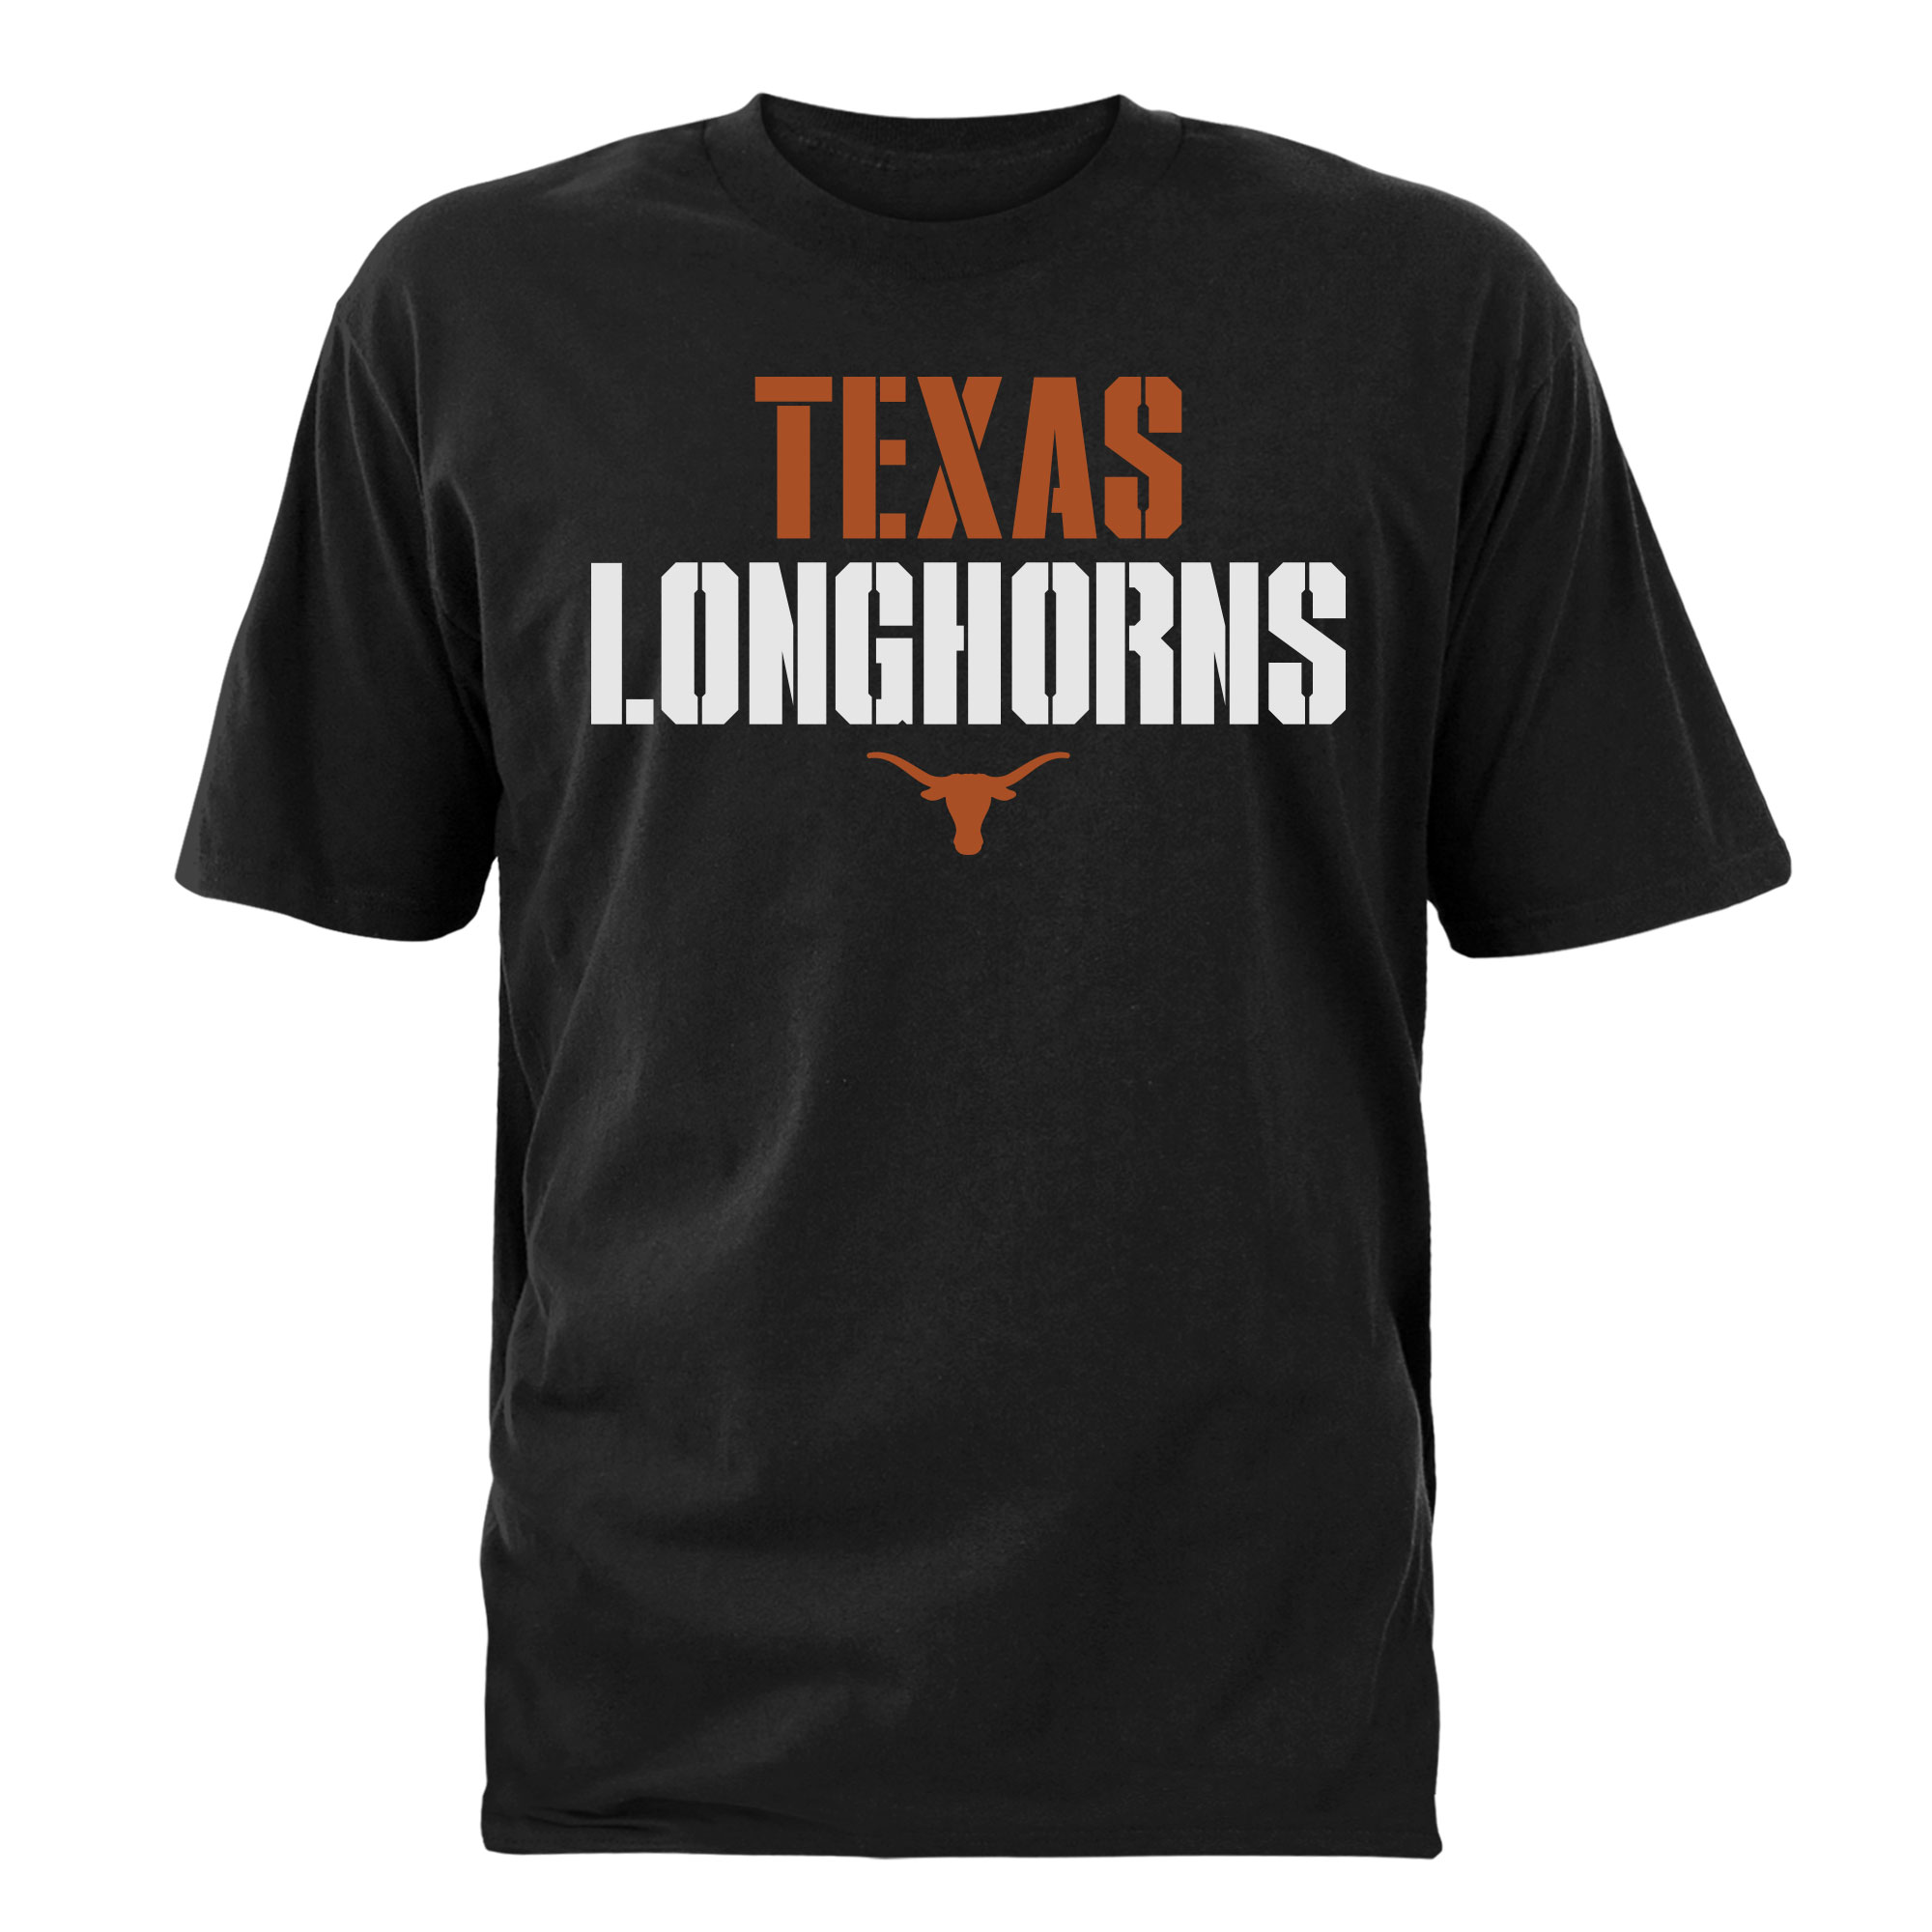 Men's Black Texas Longhorns Stencil Stack T-Shirt